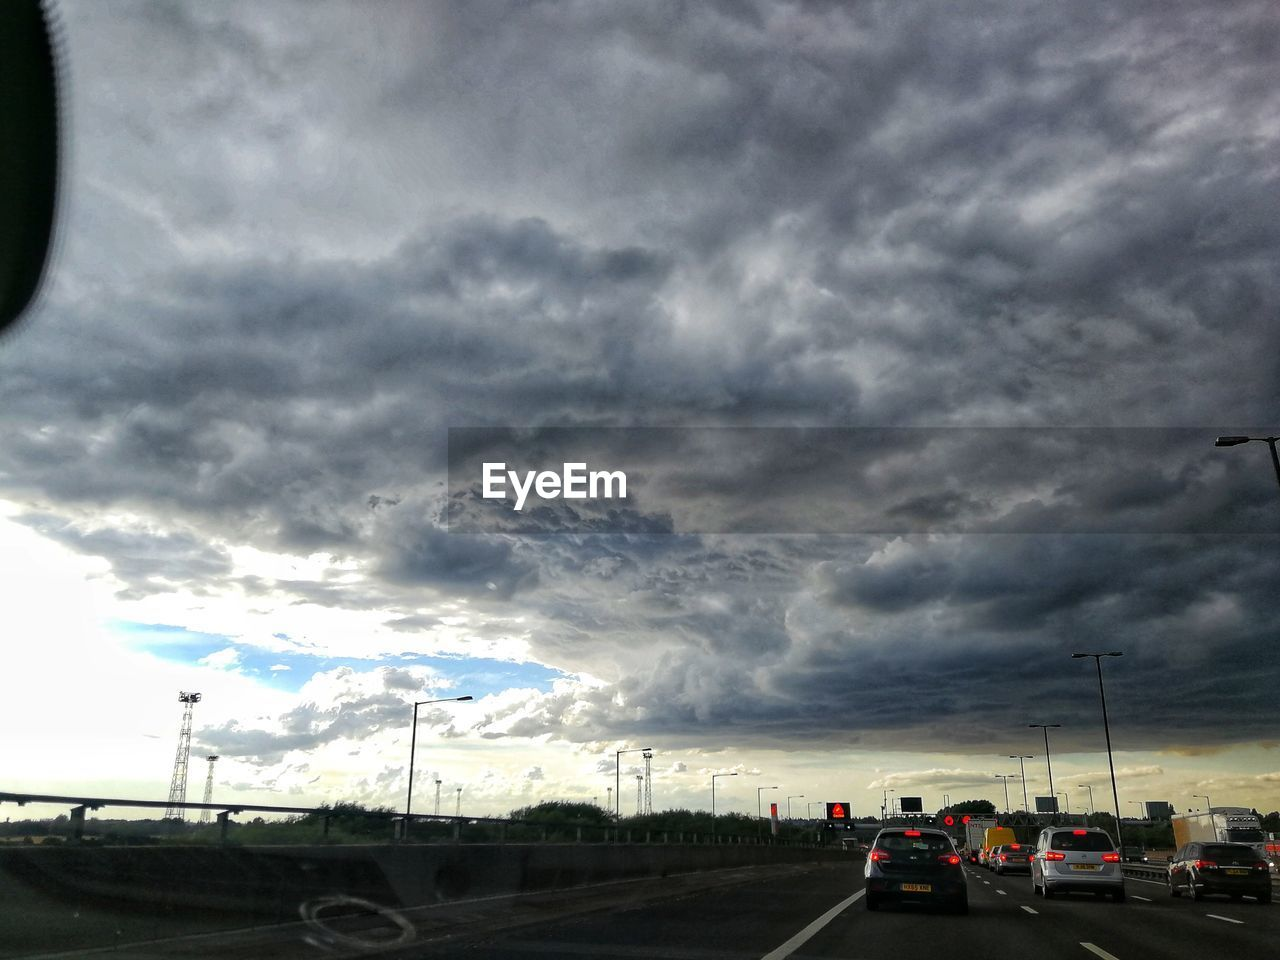 cloud - sky, sky, transportation, mode of transportation, road, motor vehicle, car, land vehicle, nature, storm, street, storm cloud, no people, overcast, dramatic sky, dusk, travel, cloudscape, highway, outdoors, ominous, road trip